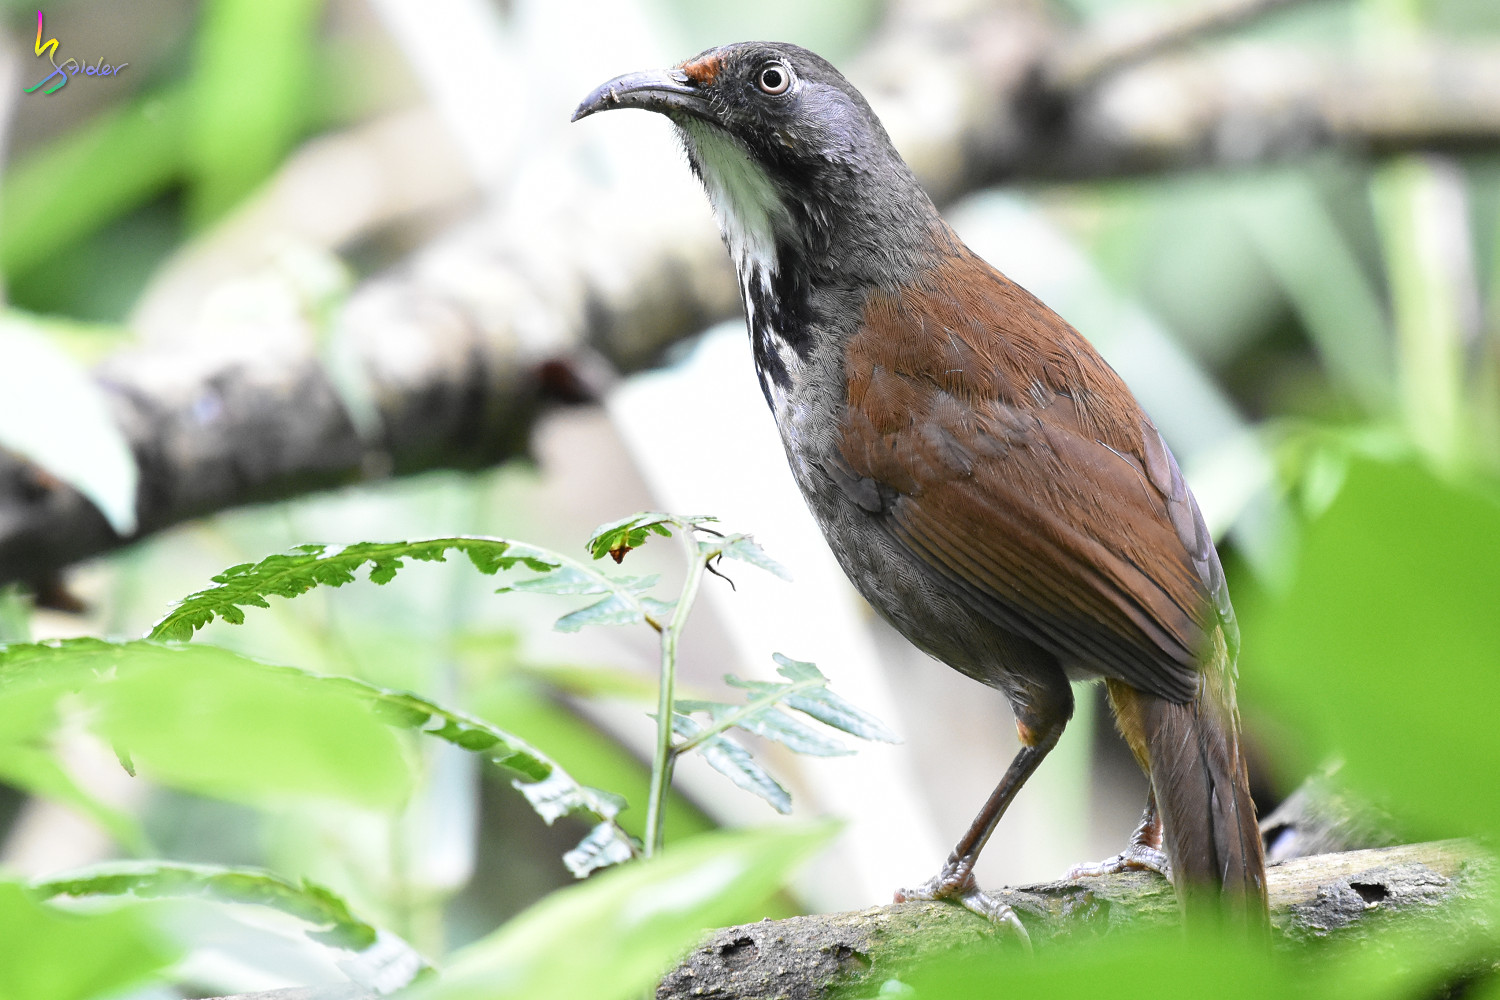 Rusty-cheeked_Scimitar-Babbler_0758